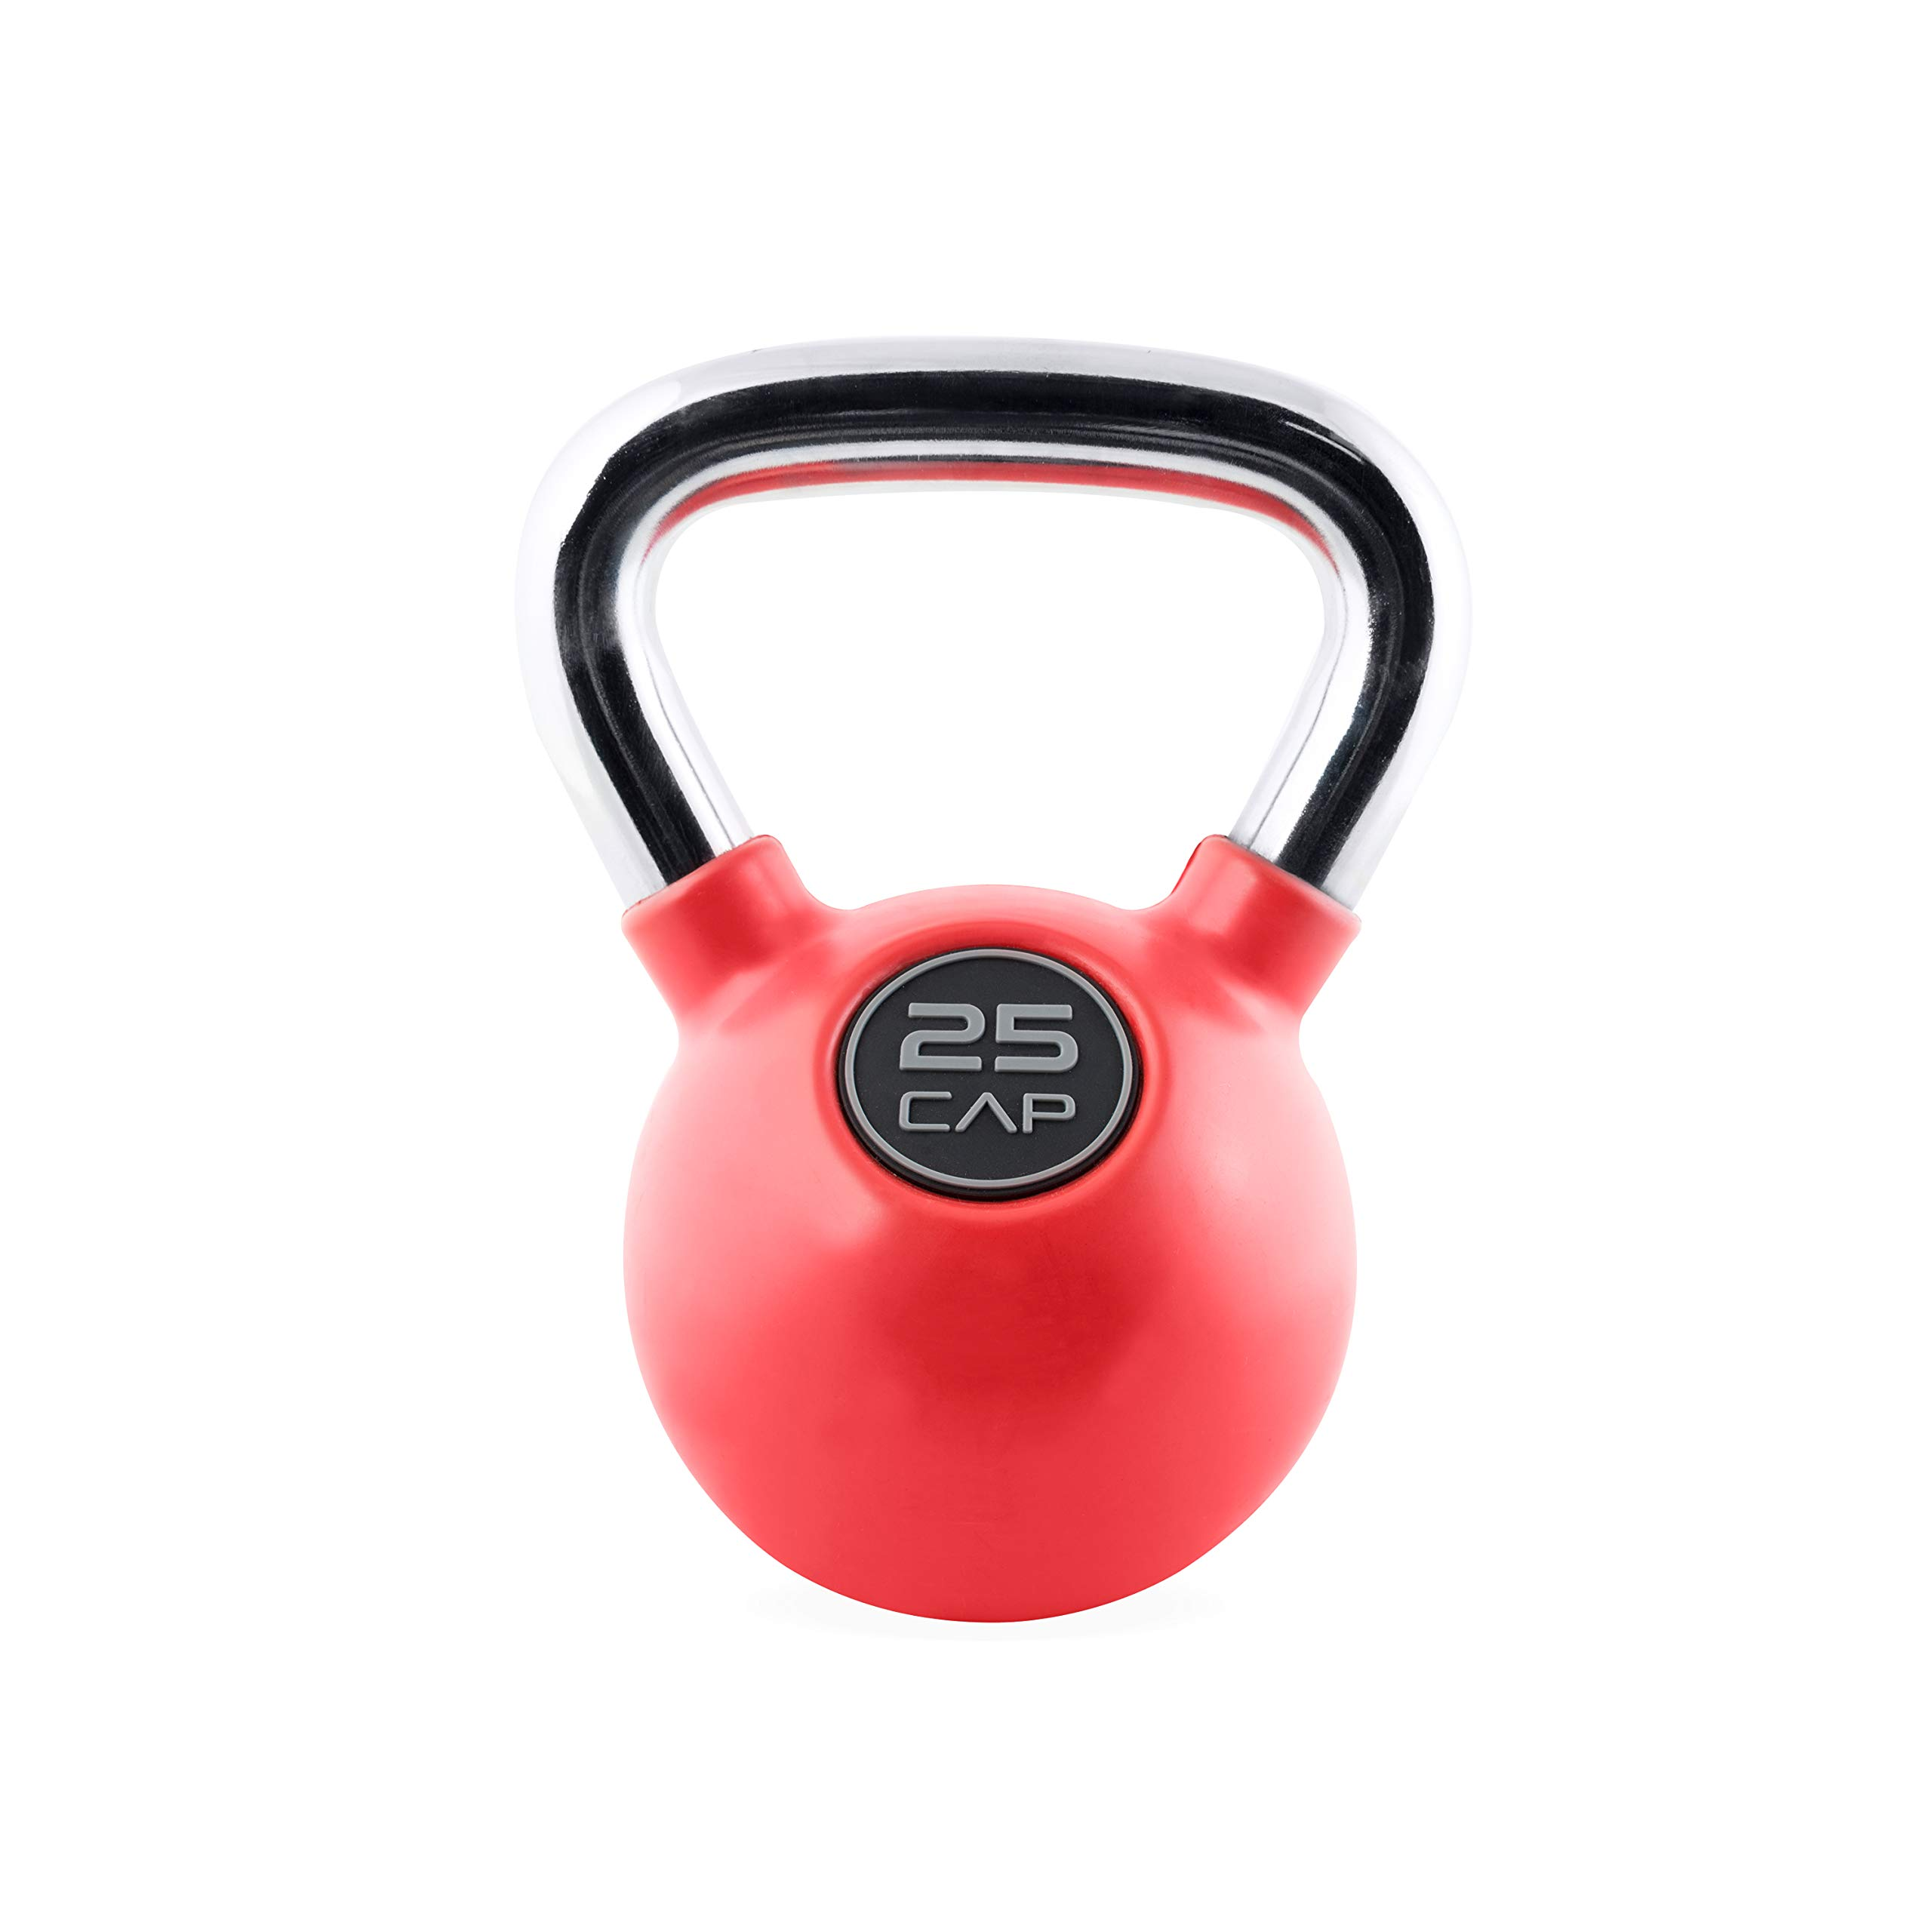 CAP Barbell Colored Rubber Coated Kettlebell with Chrome Handle, 25 lb